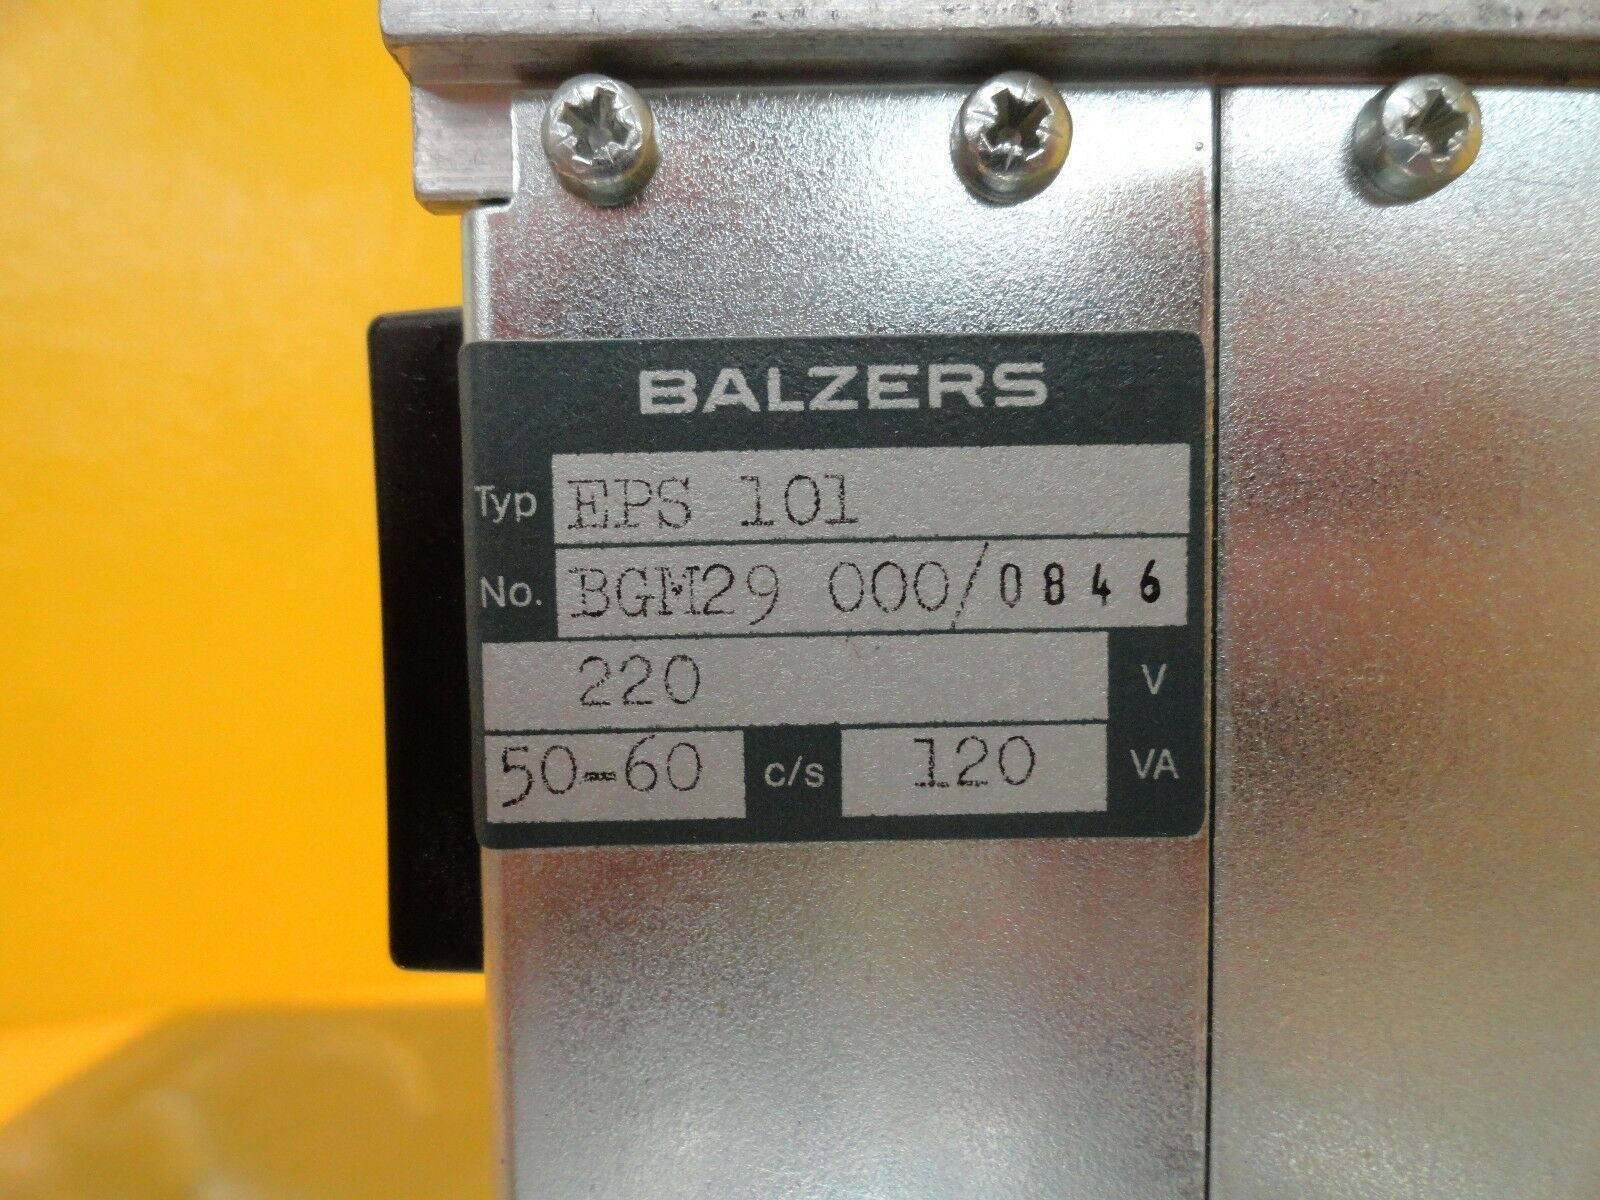 Balzers BG M29 000 Power Supply PCB Card EPS 101 EPS101 Used Working